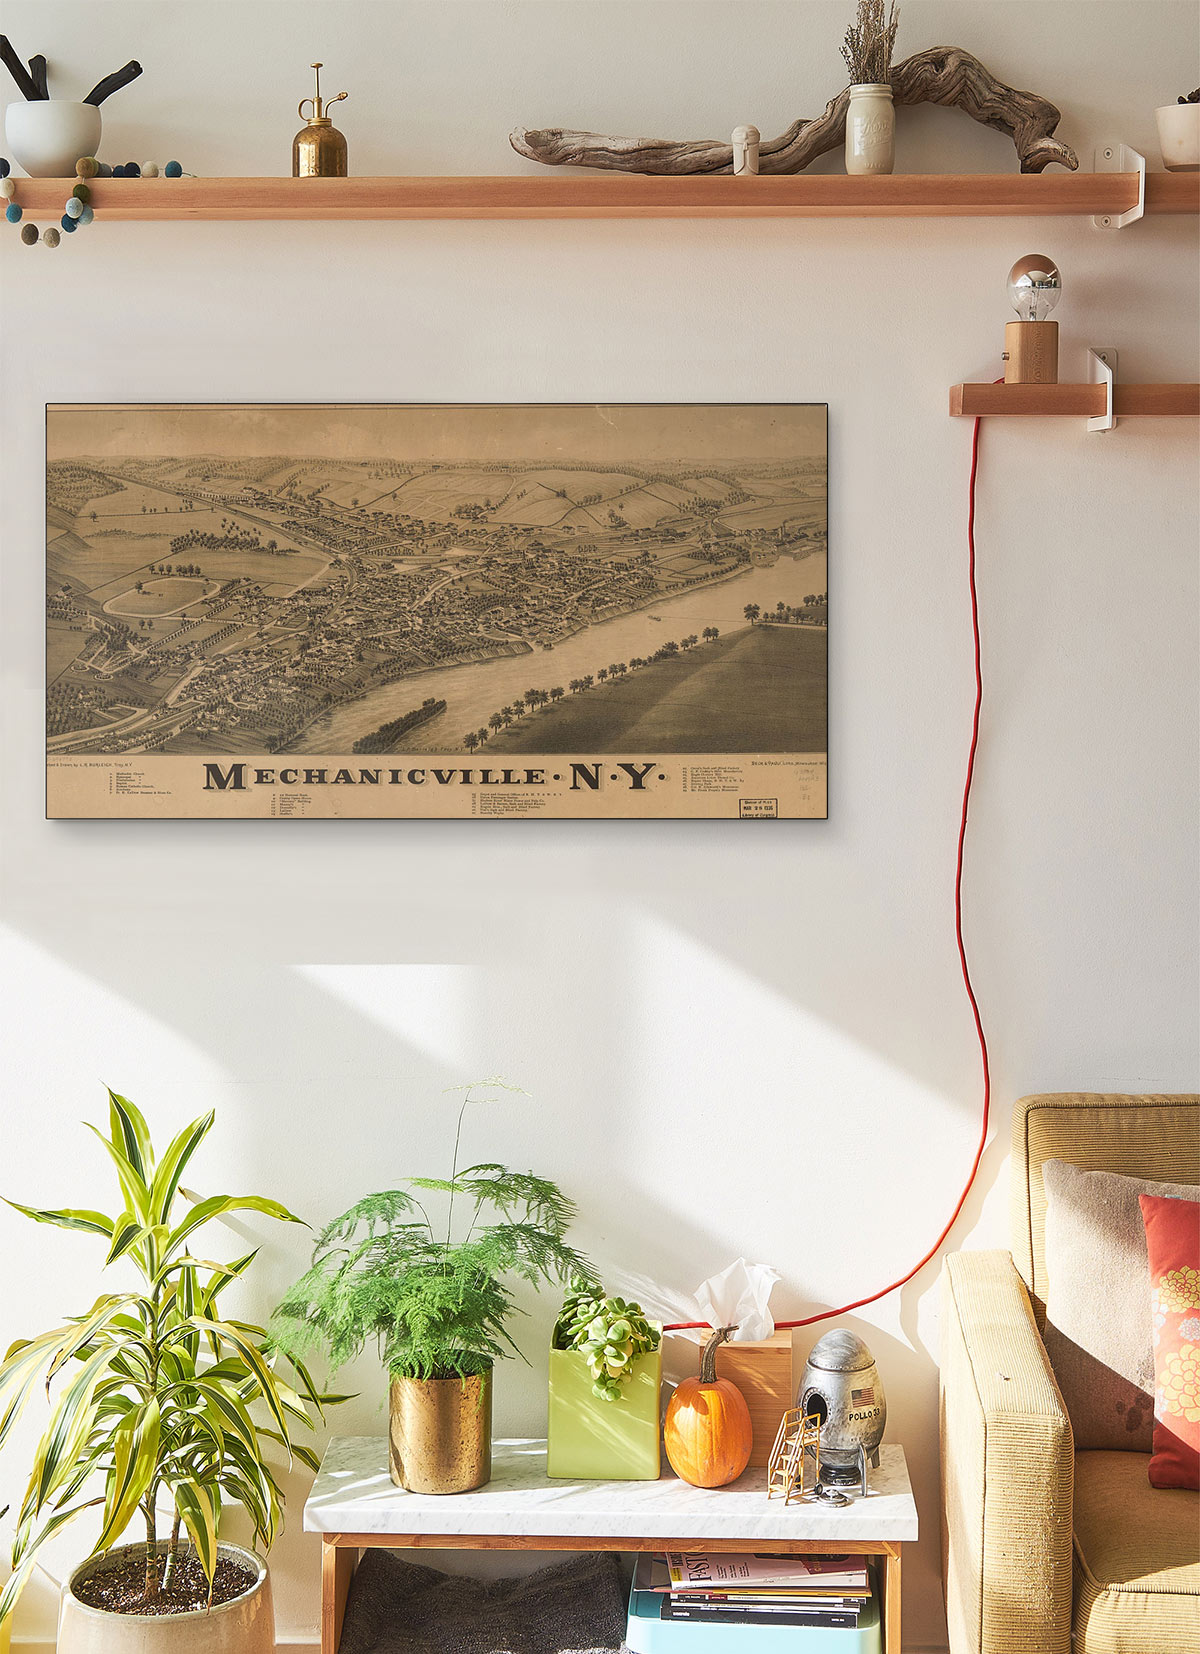 Mechanicville N.y LARGE Vintage Map